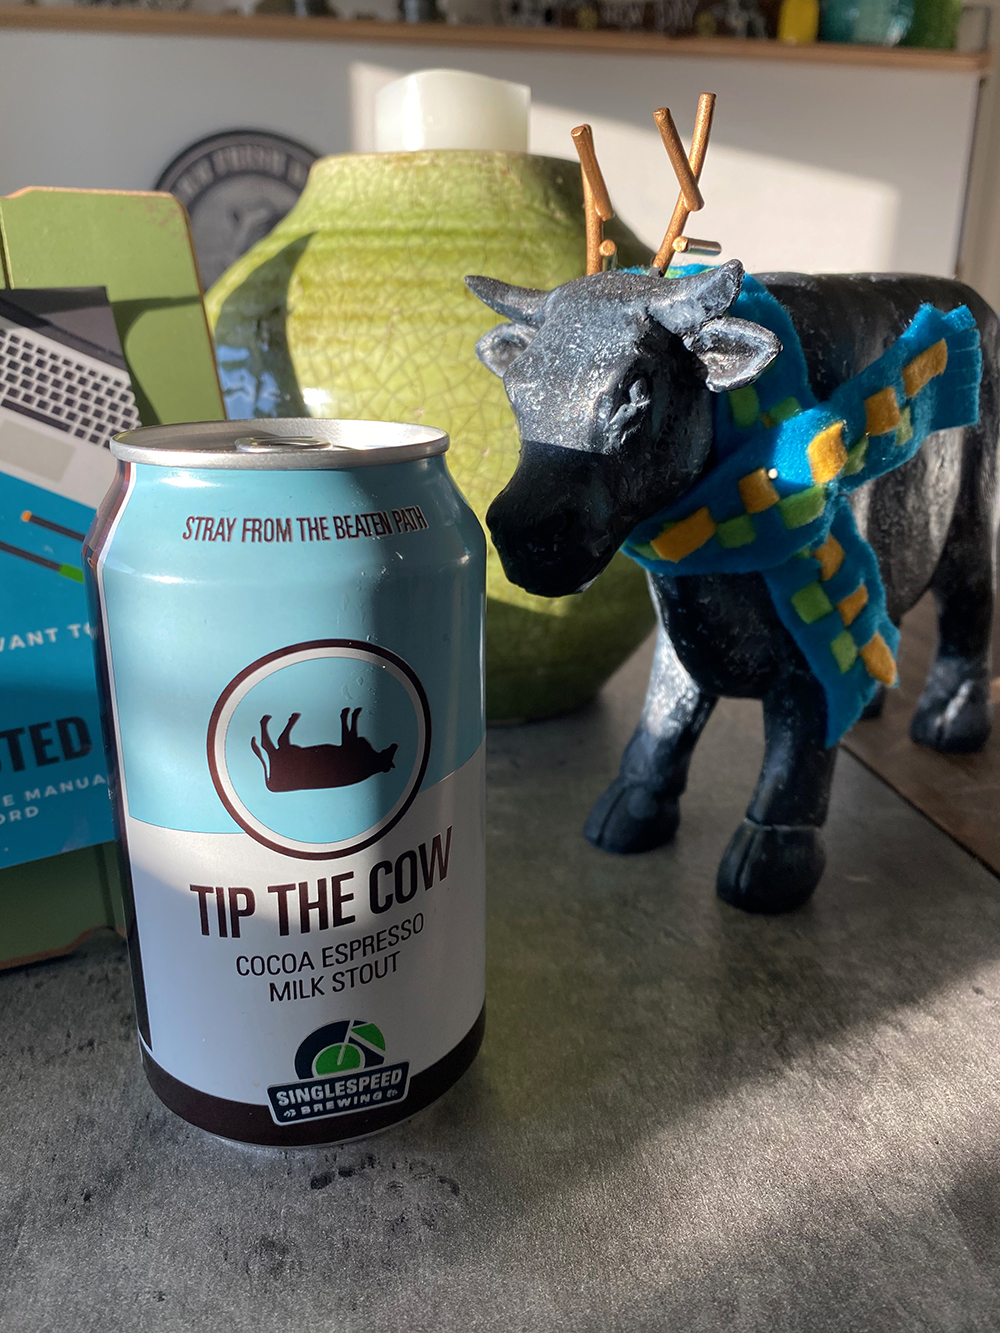 Can of Tip the Cow from Single Speed Brewing next to cow statue at New Day Dairy Guest Barn in Clarksville, Iowa